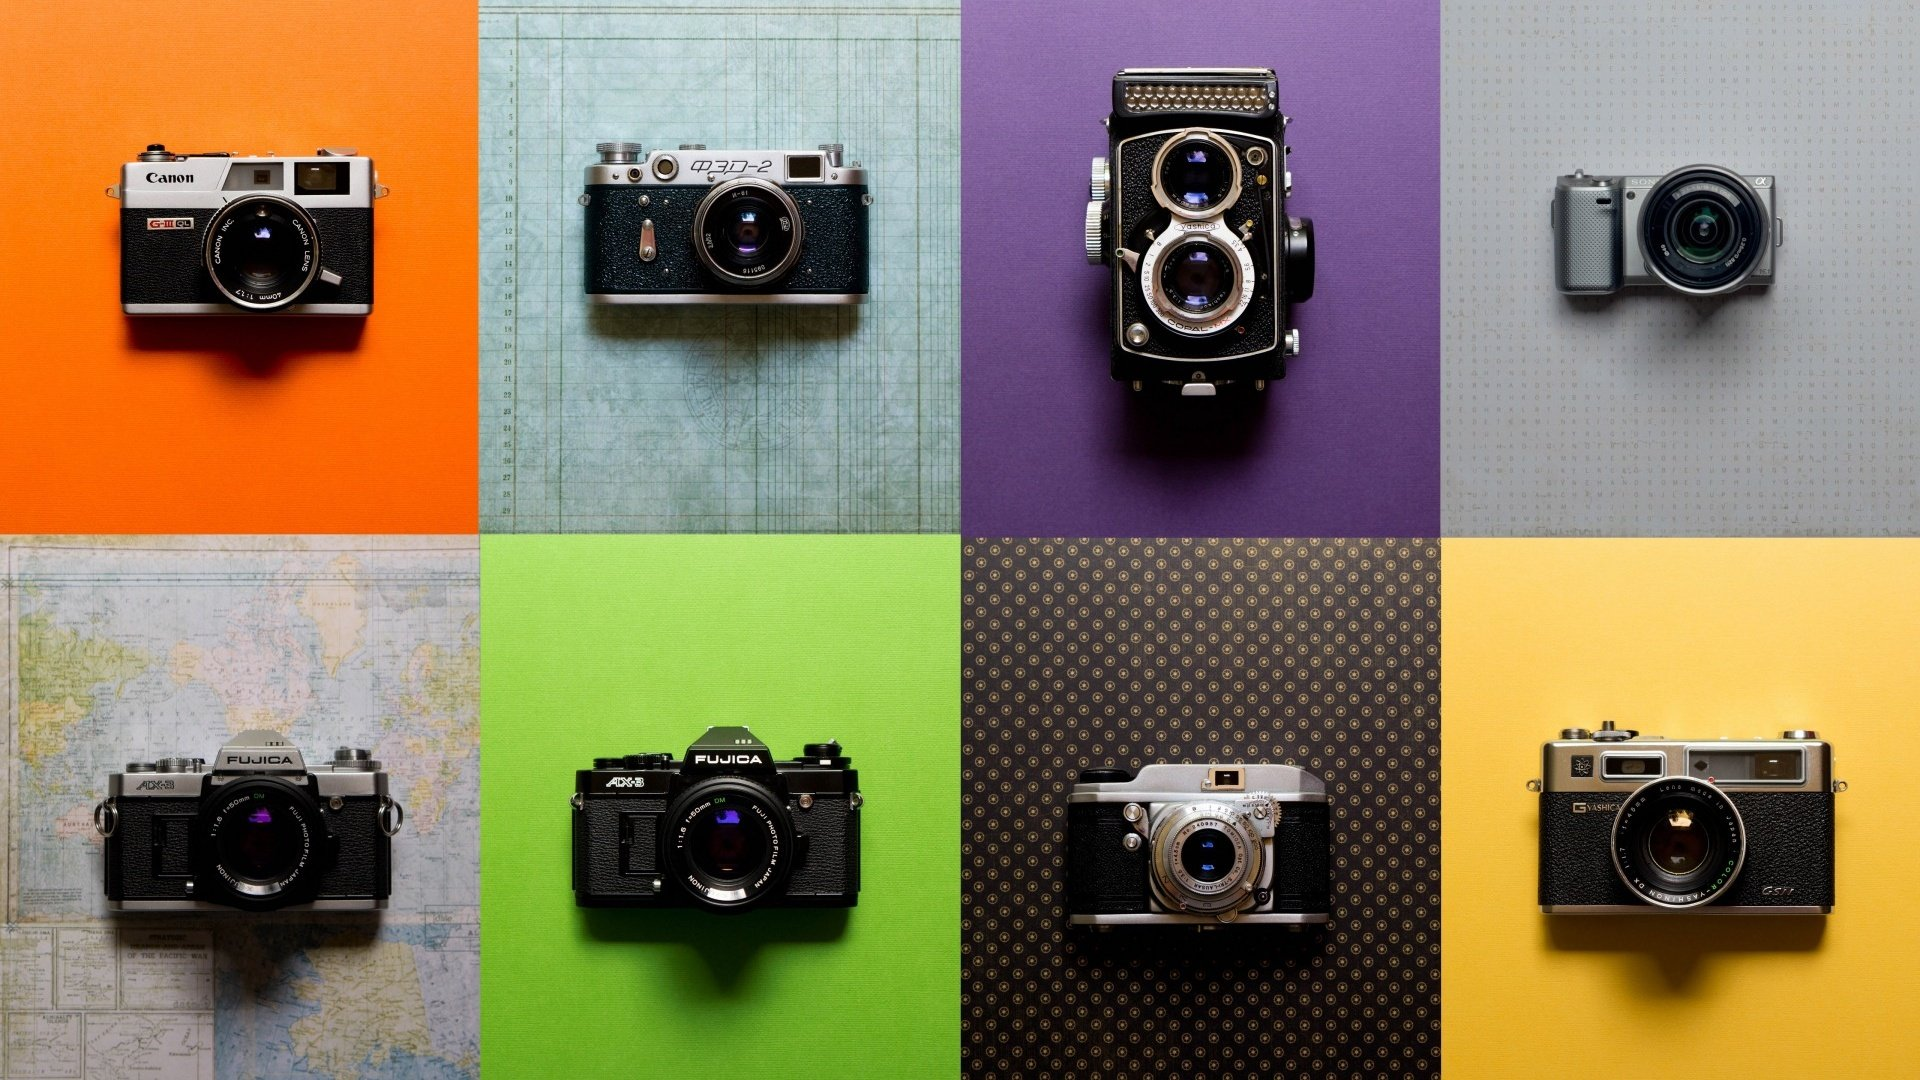 ws_Vintage_Cameras_Collection_1920x1080_36b3390d-987e-4758-ba8c-304ae10a012f_2048x2048